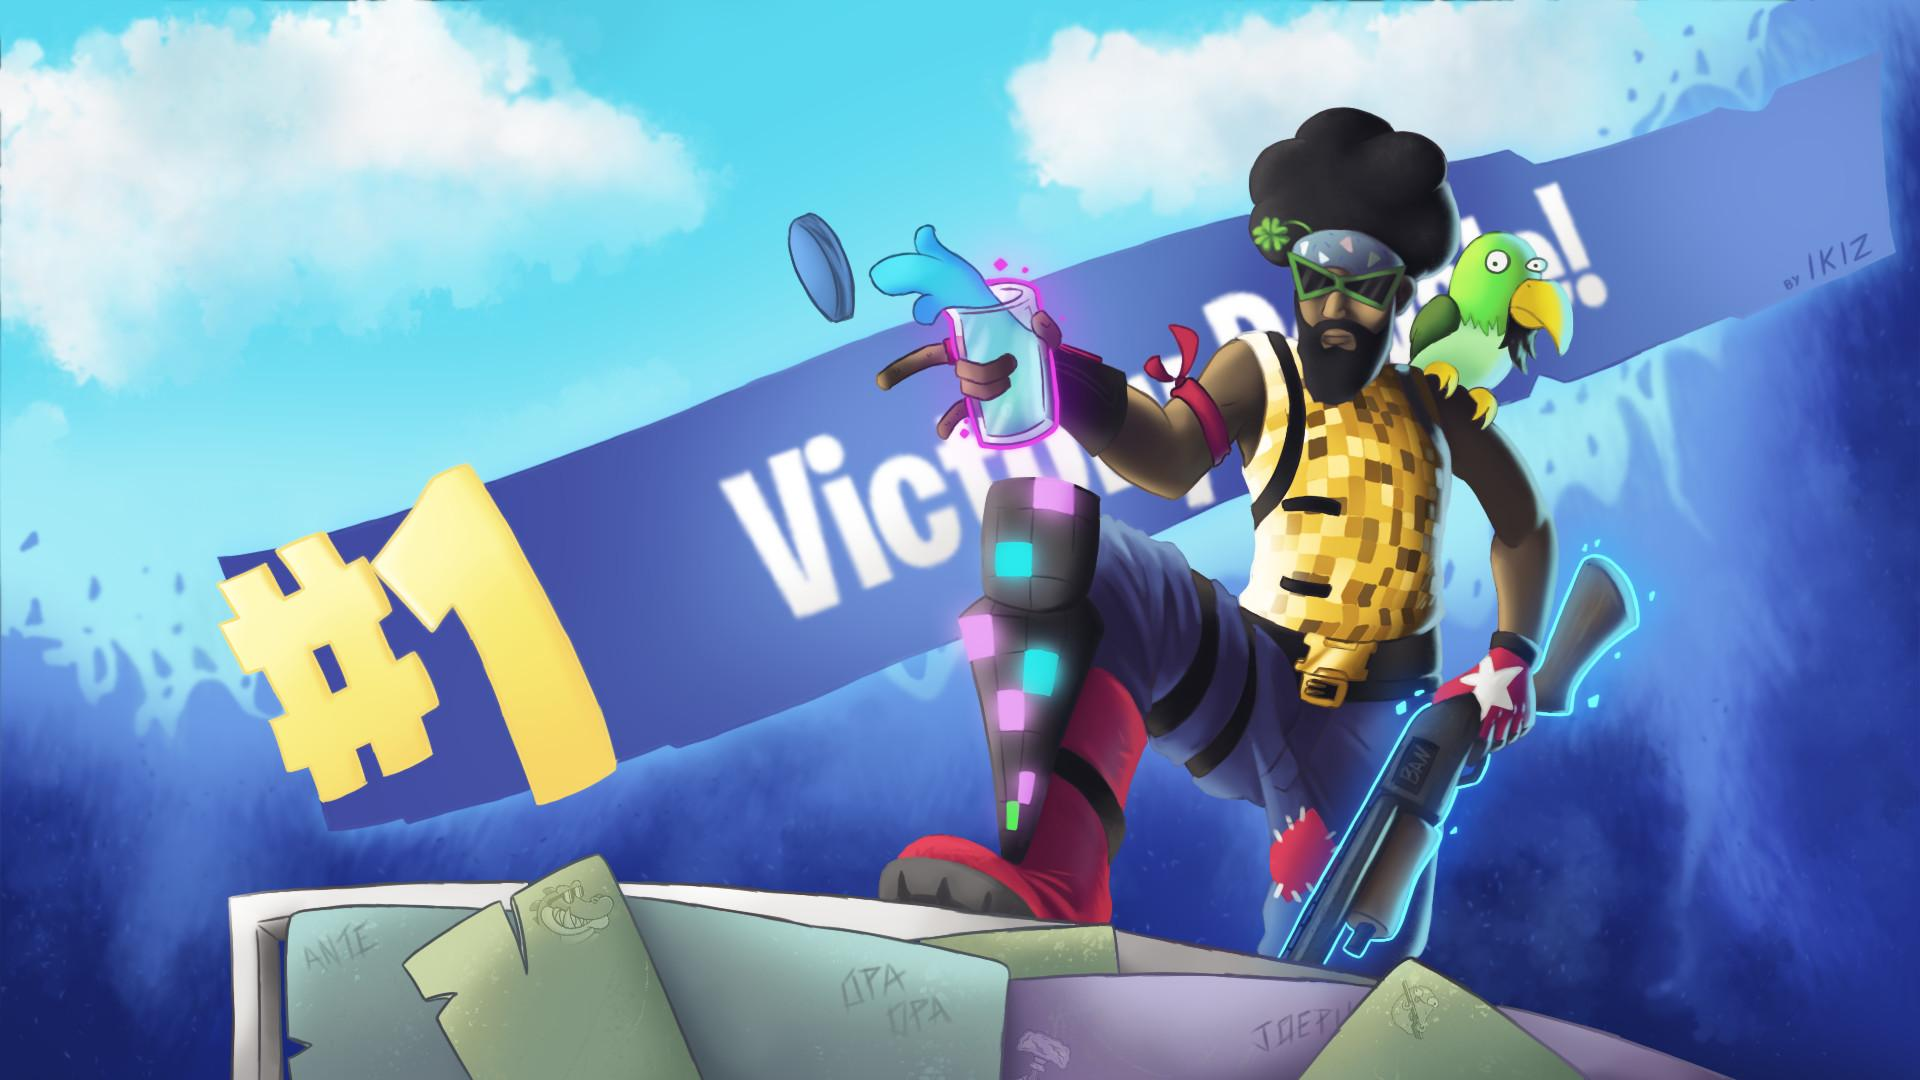 Mobile platforms war or why we are fighting for Fortnite free?